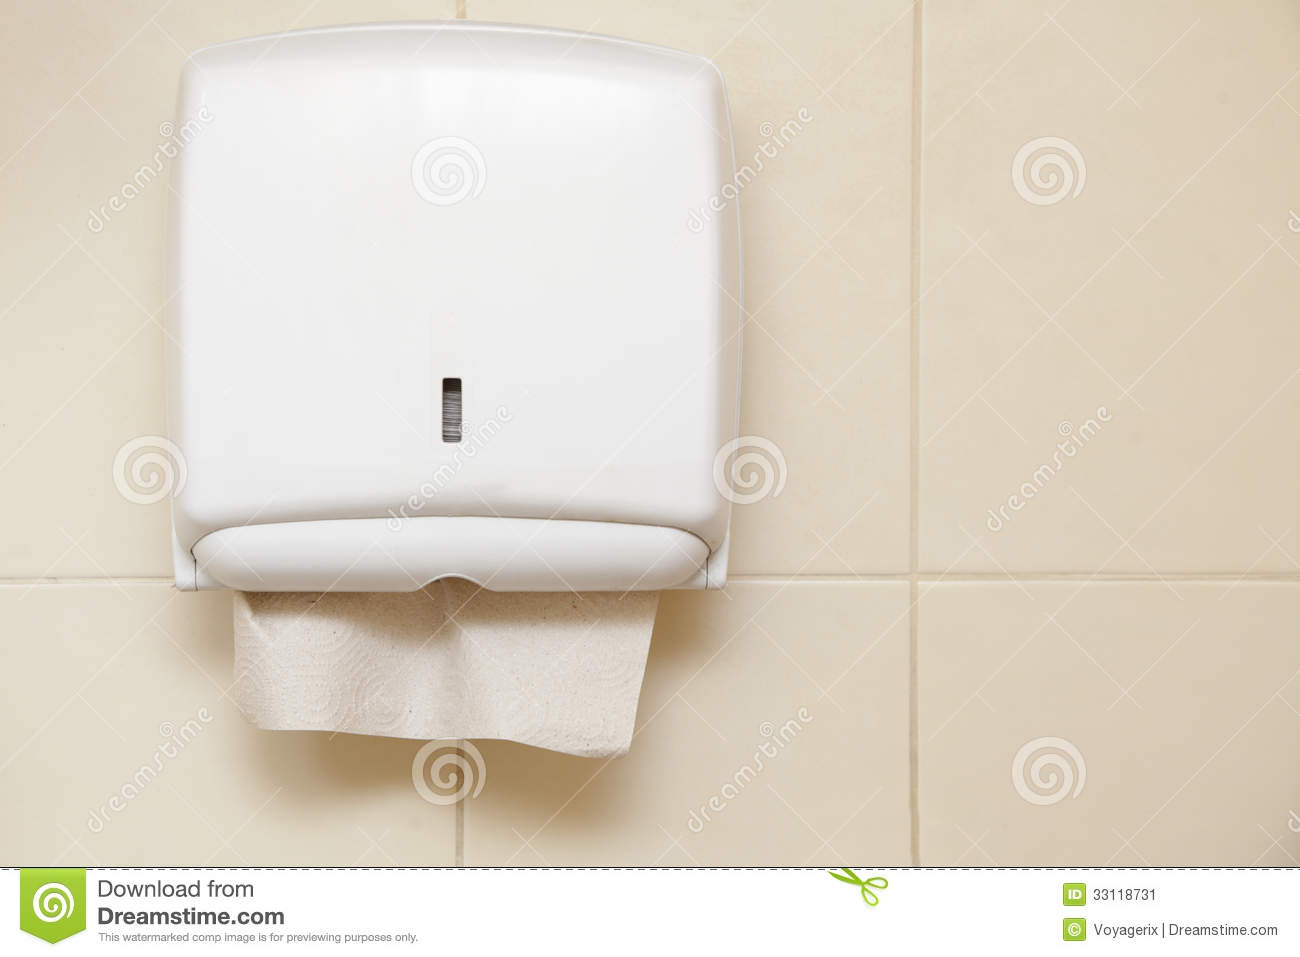 Paper Towel Dispenser In The Bathroom Stock Image Image 33118731